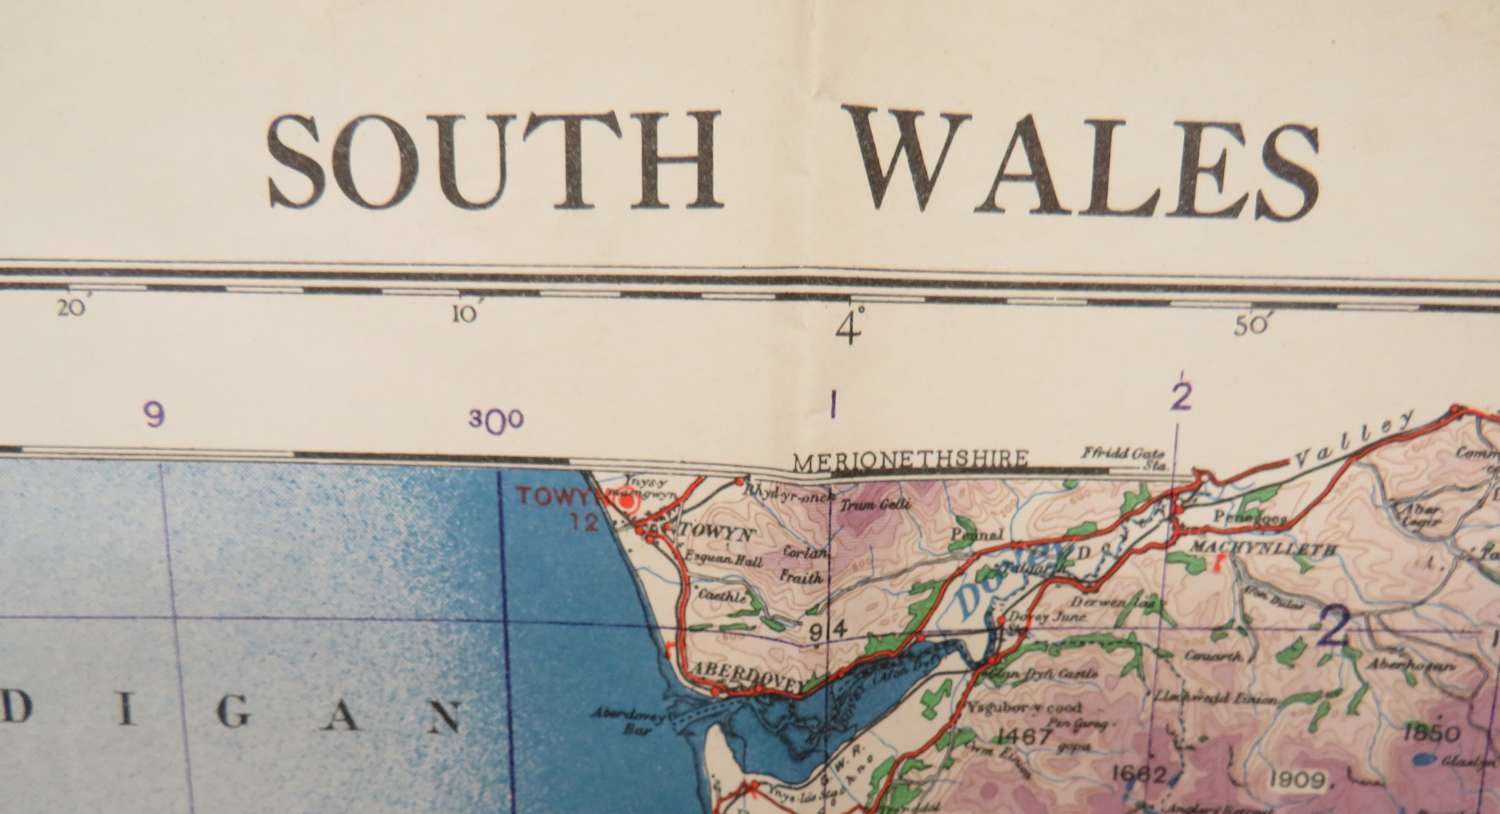 WW2 British Military Map of South Wales